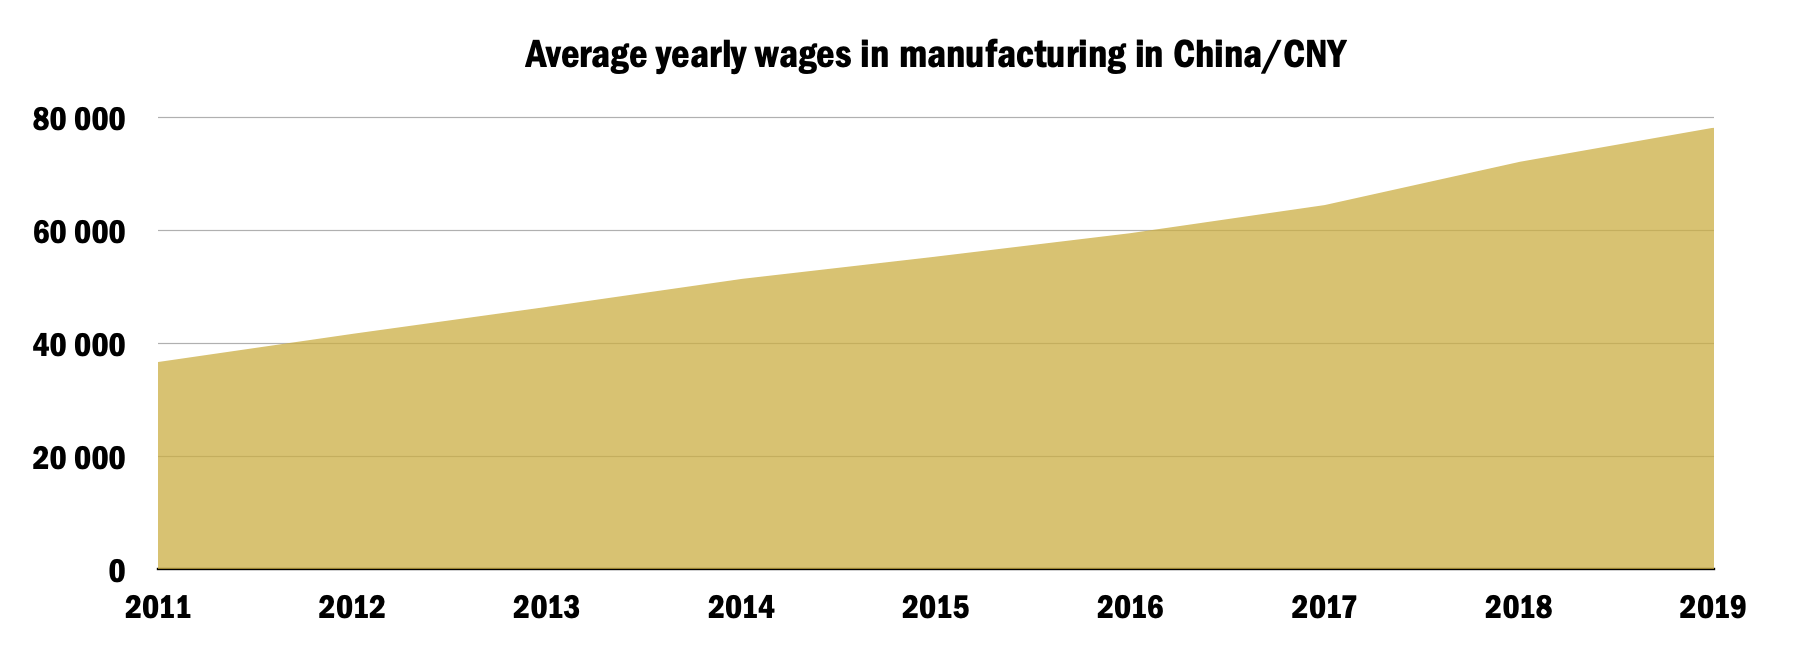 Development graph of average yearly wages in China in the manufacturing industry